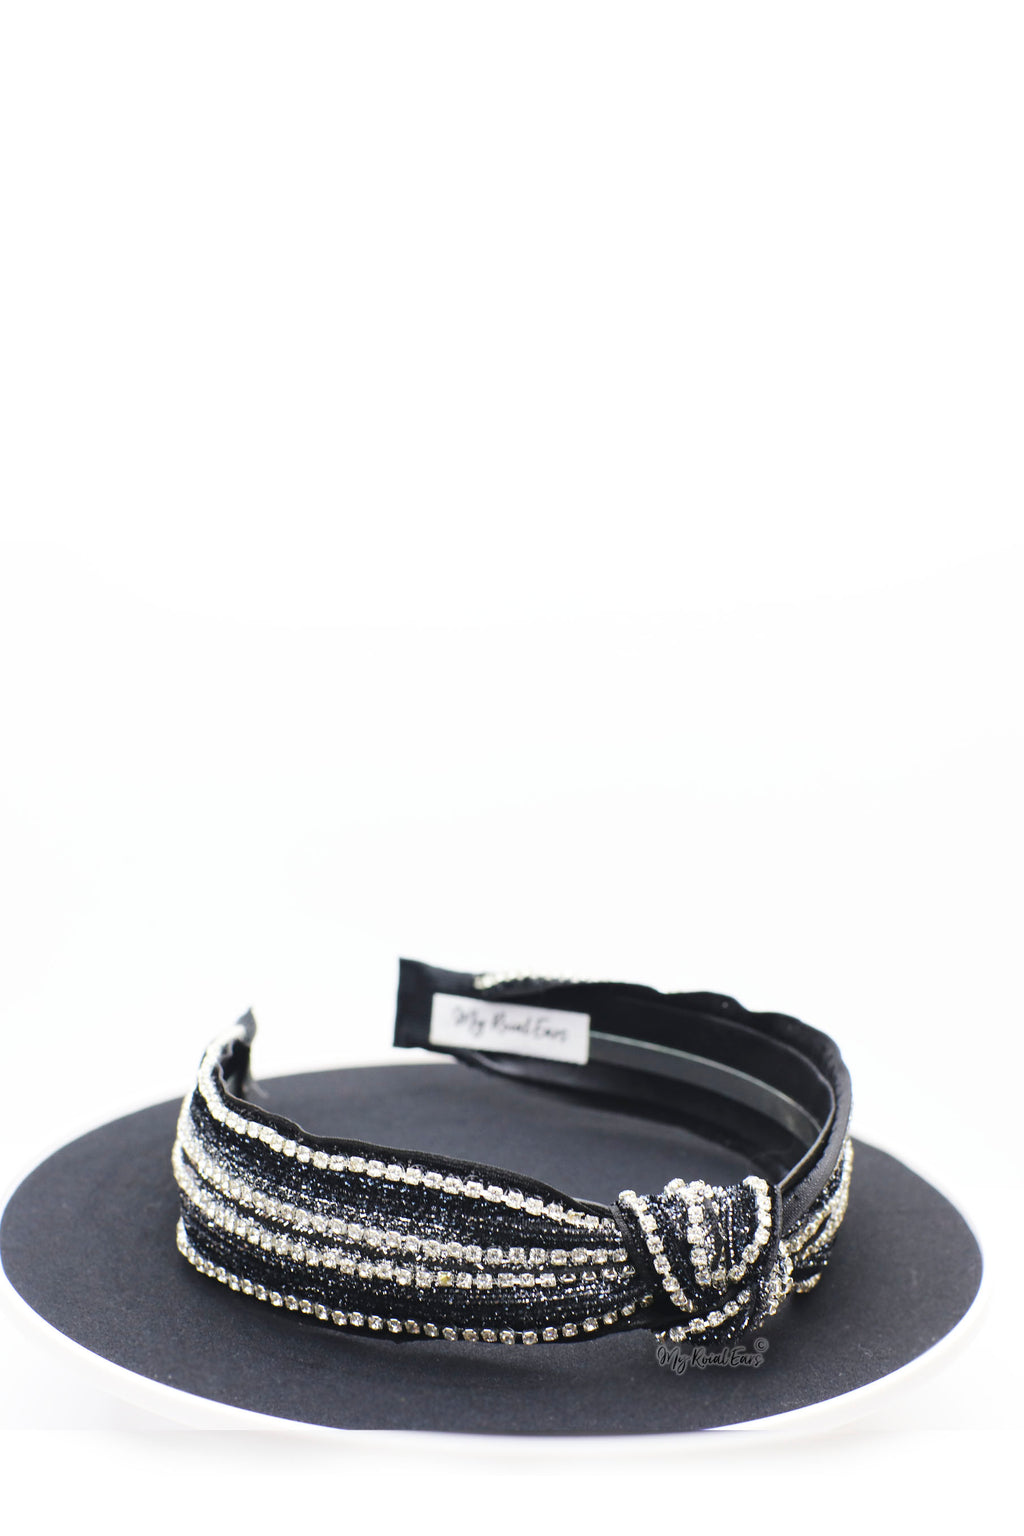 Queen Kelila- black and silver rhinestone knotted headband - My Roial Ears LTD